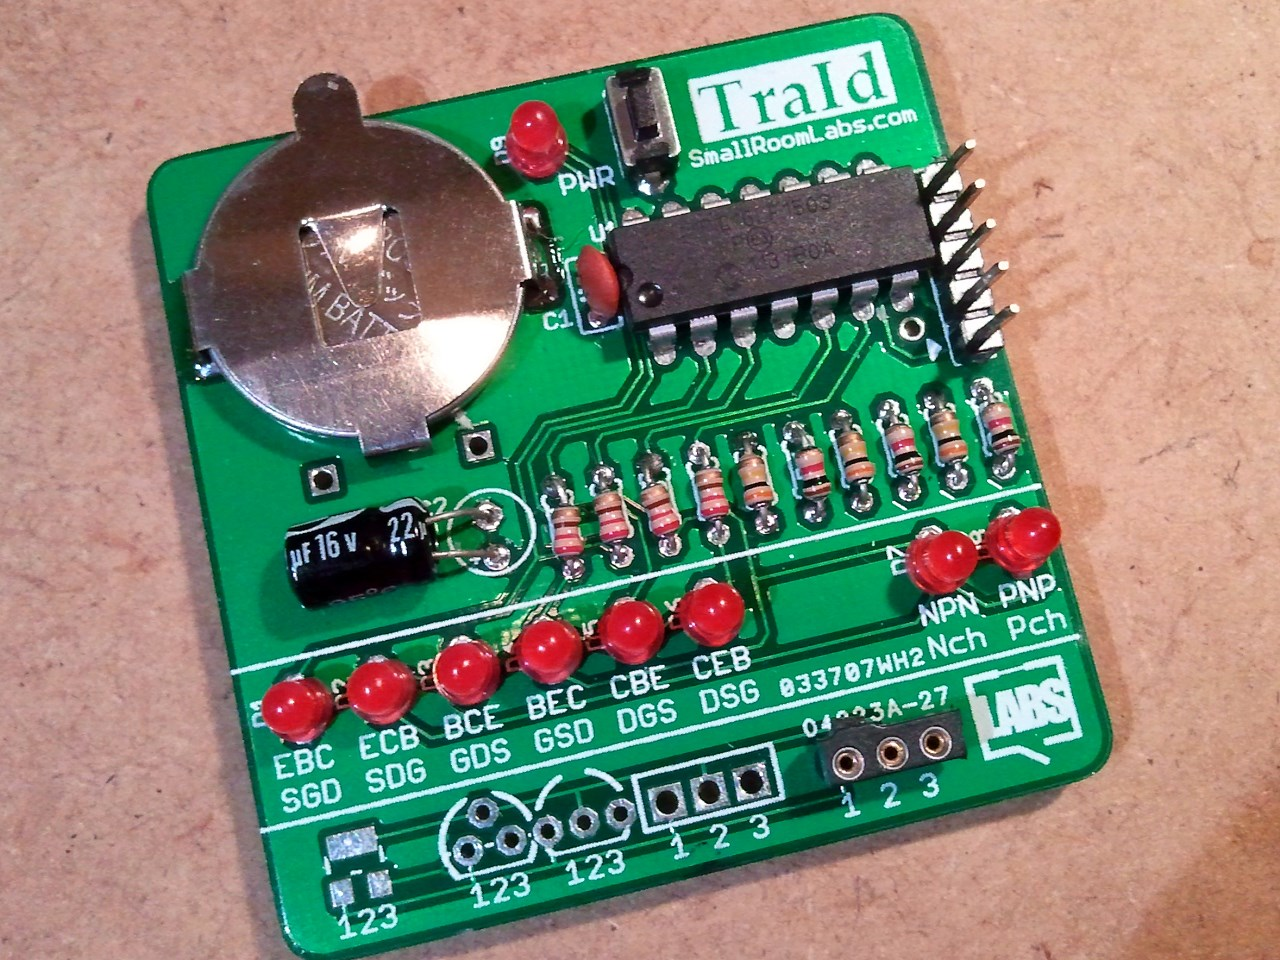 Traid Transistor Type Polarity Identifier Electronics Lab Circuit Is A Simple Tester And Pinout It Able To Test Bipolar Transistors As Well N Mosfet P